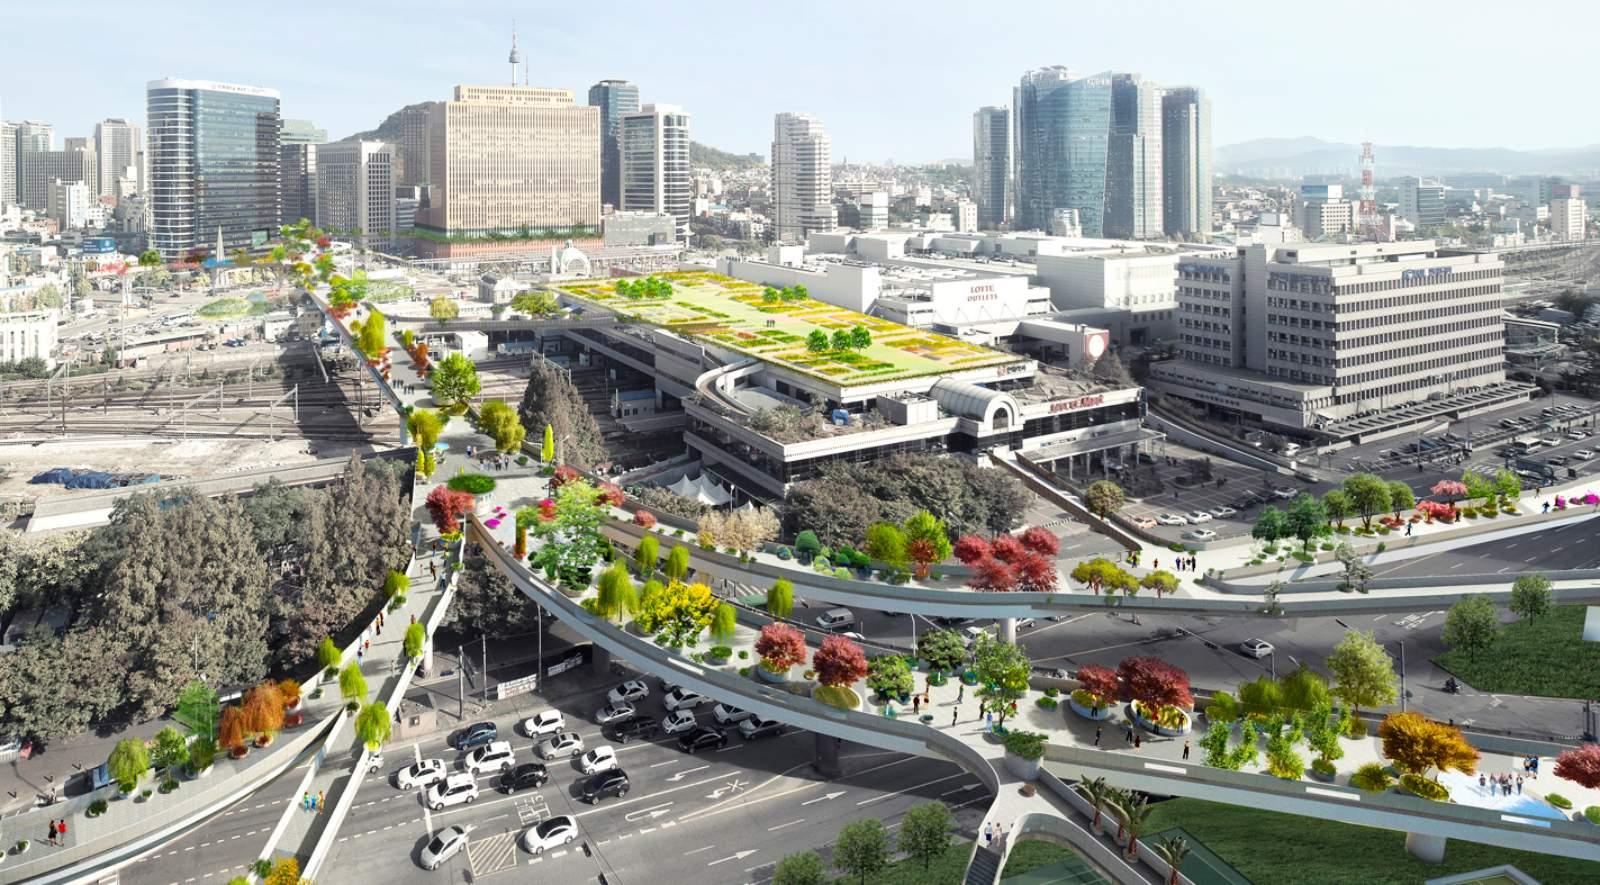 Interior Space Planning Mvrdv Wins Competition For Seoul Skygarden A As Architecture